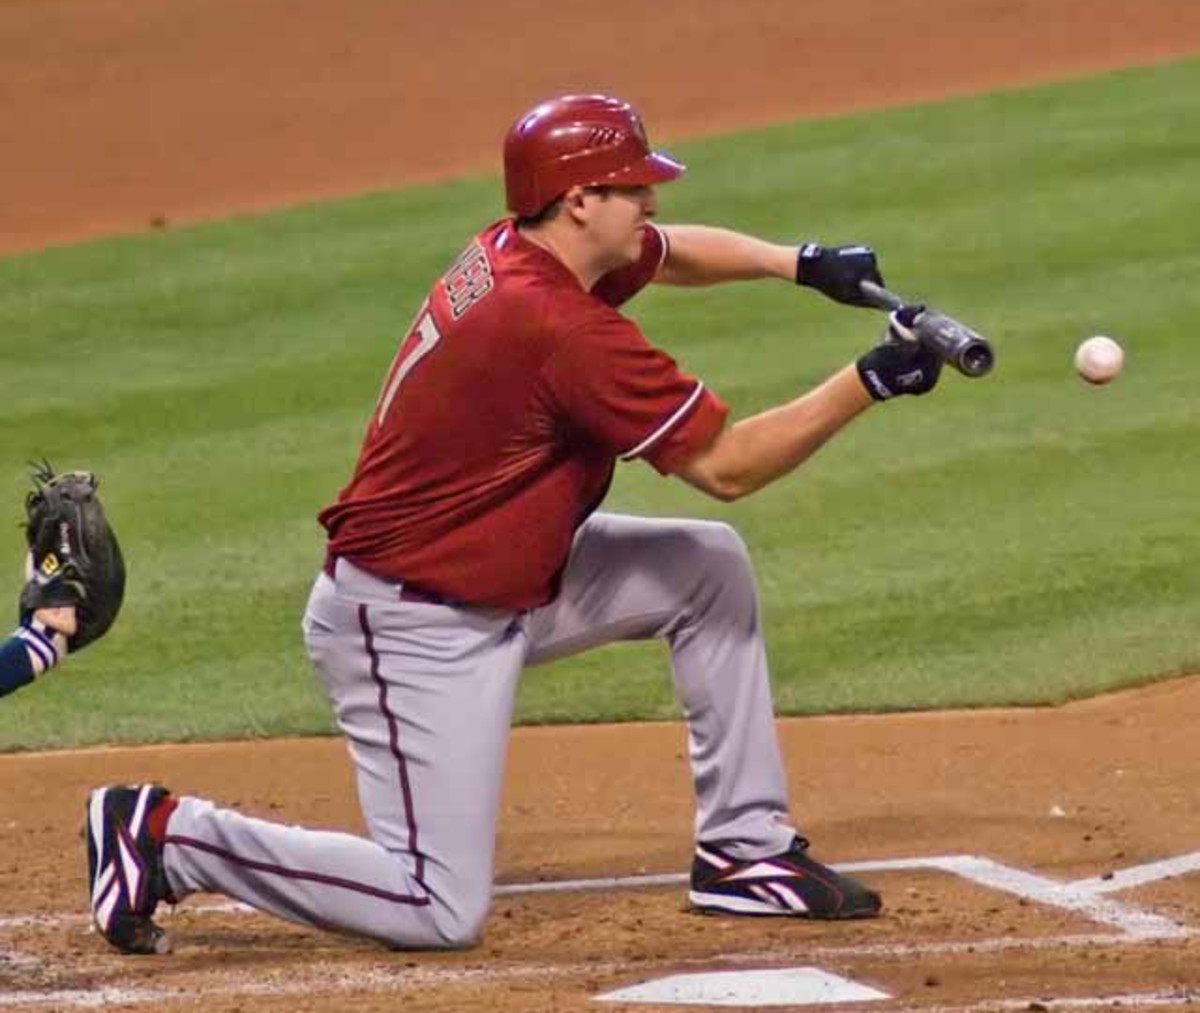 Former Arizona Diamondbacks pitcher Brandon Webb bunts during a 2007 game. Webb won the 2006 National League Cy Young Award while with the Diamondbacks.